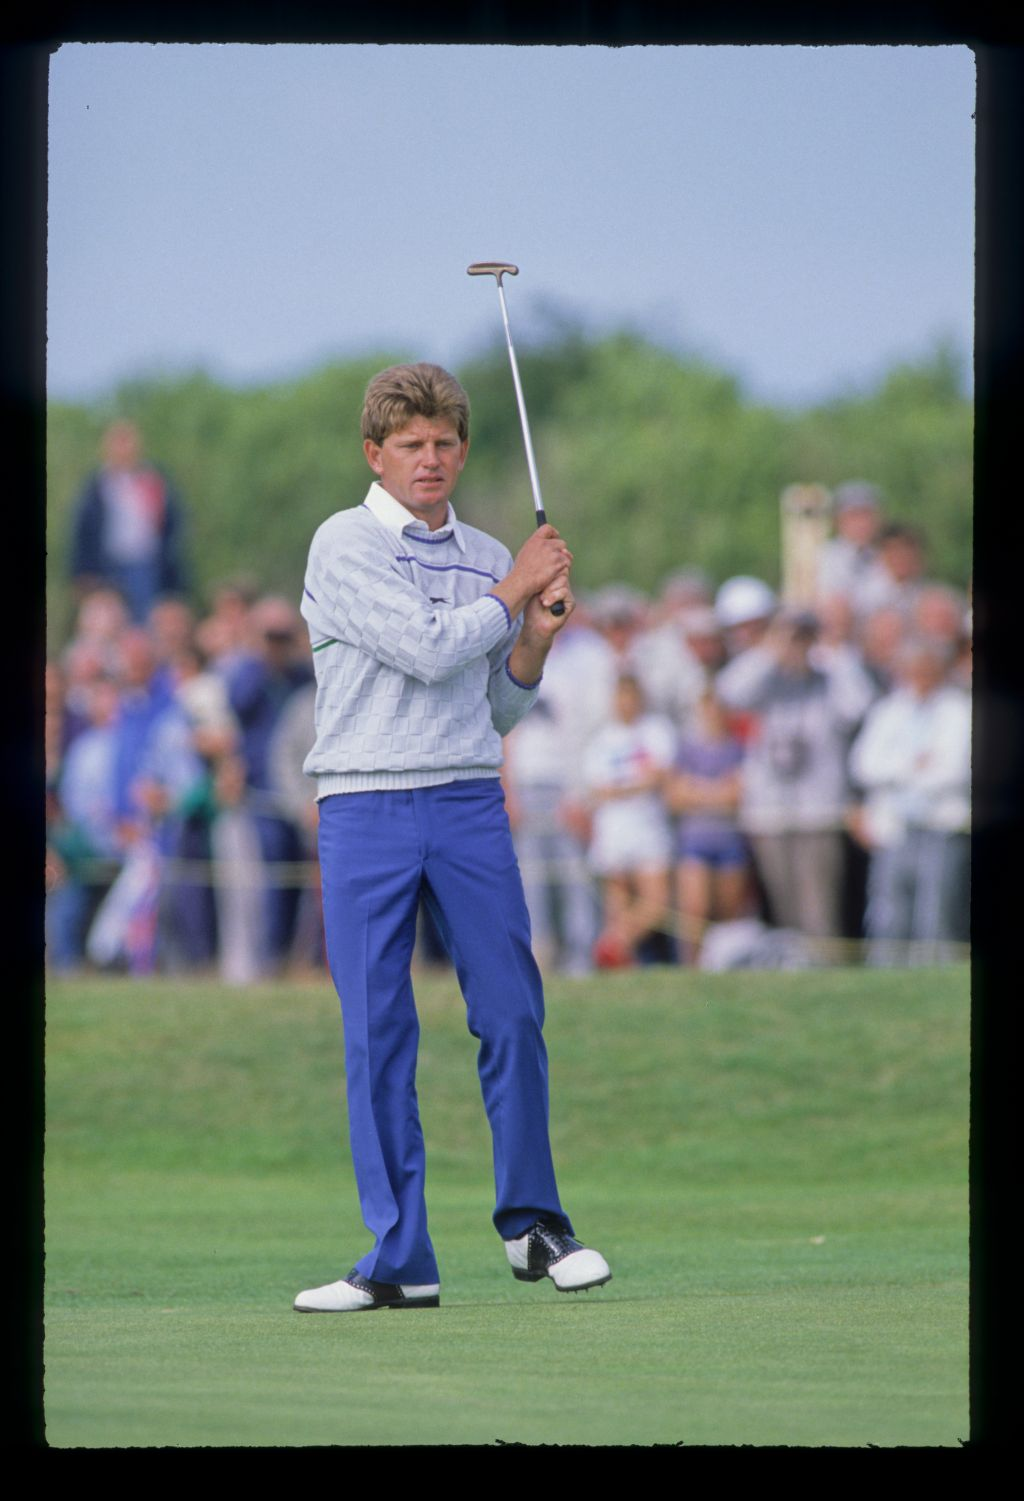 Nick Price putting on his way to second place during the 1988 Open Championship